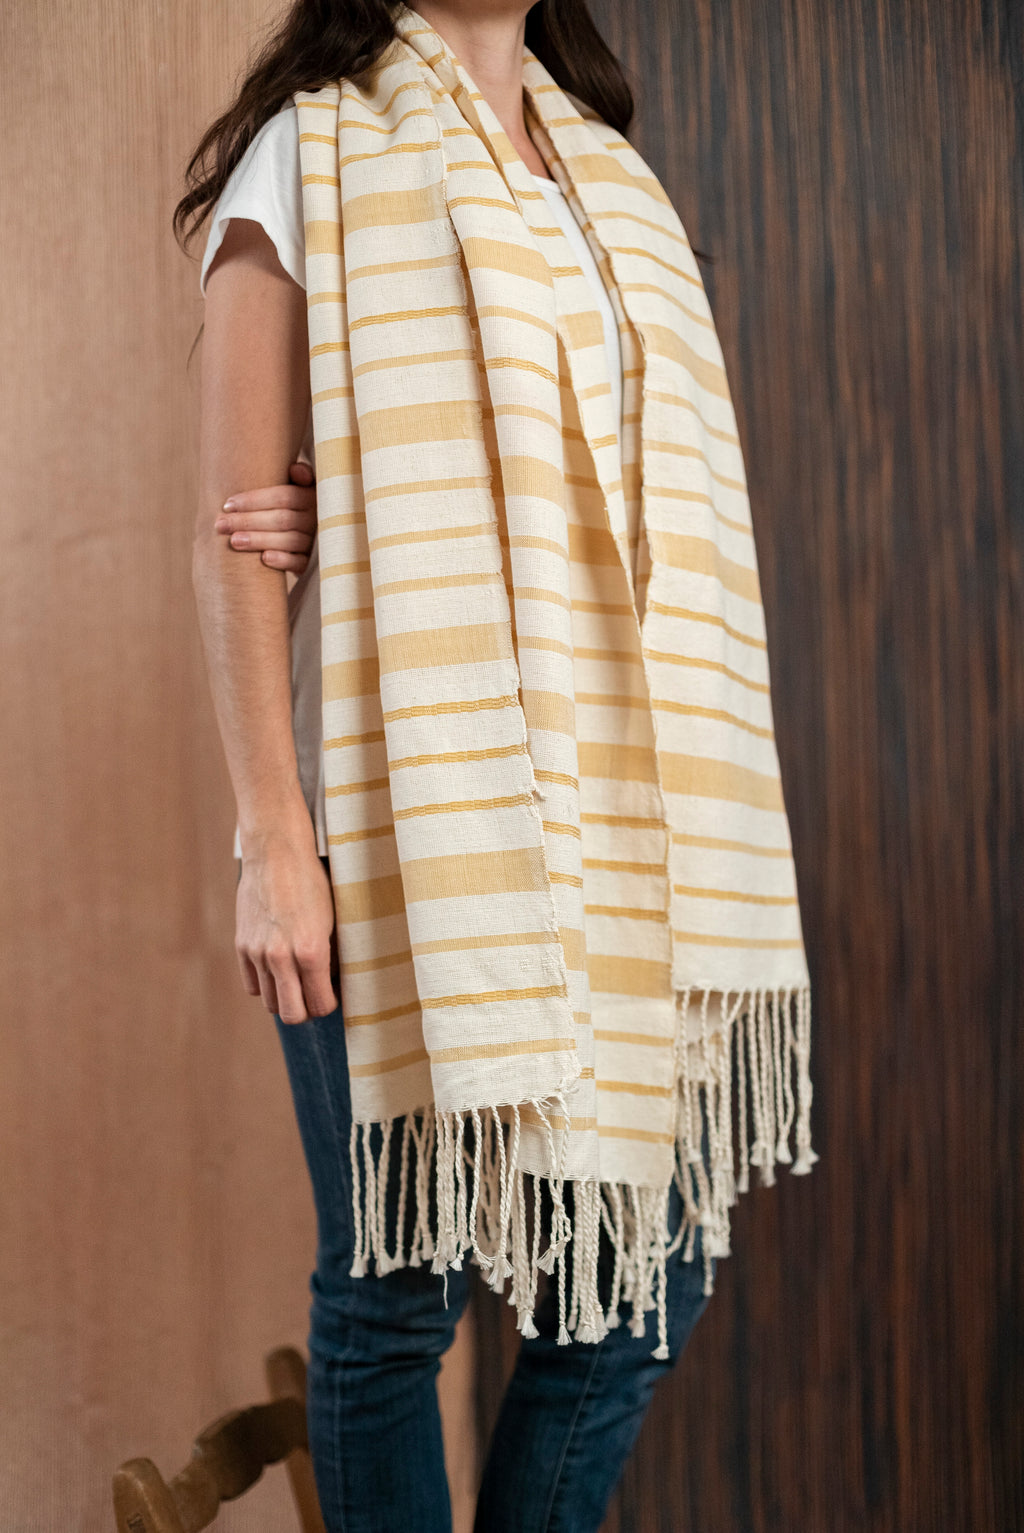 Scarf / poncho with Oaxaca loom beige yellow - TOCO MADERA - Handcraft shoe from Mexico - Handmade shoe